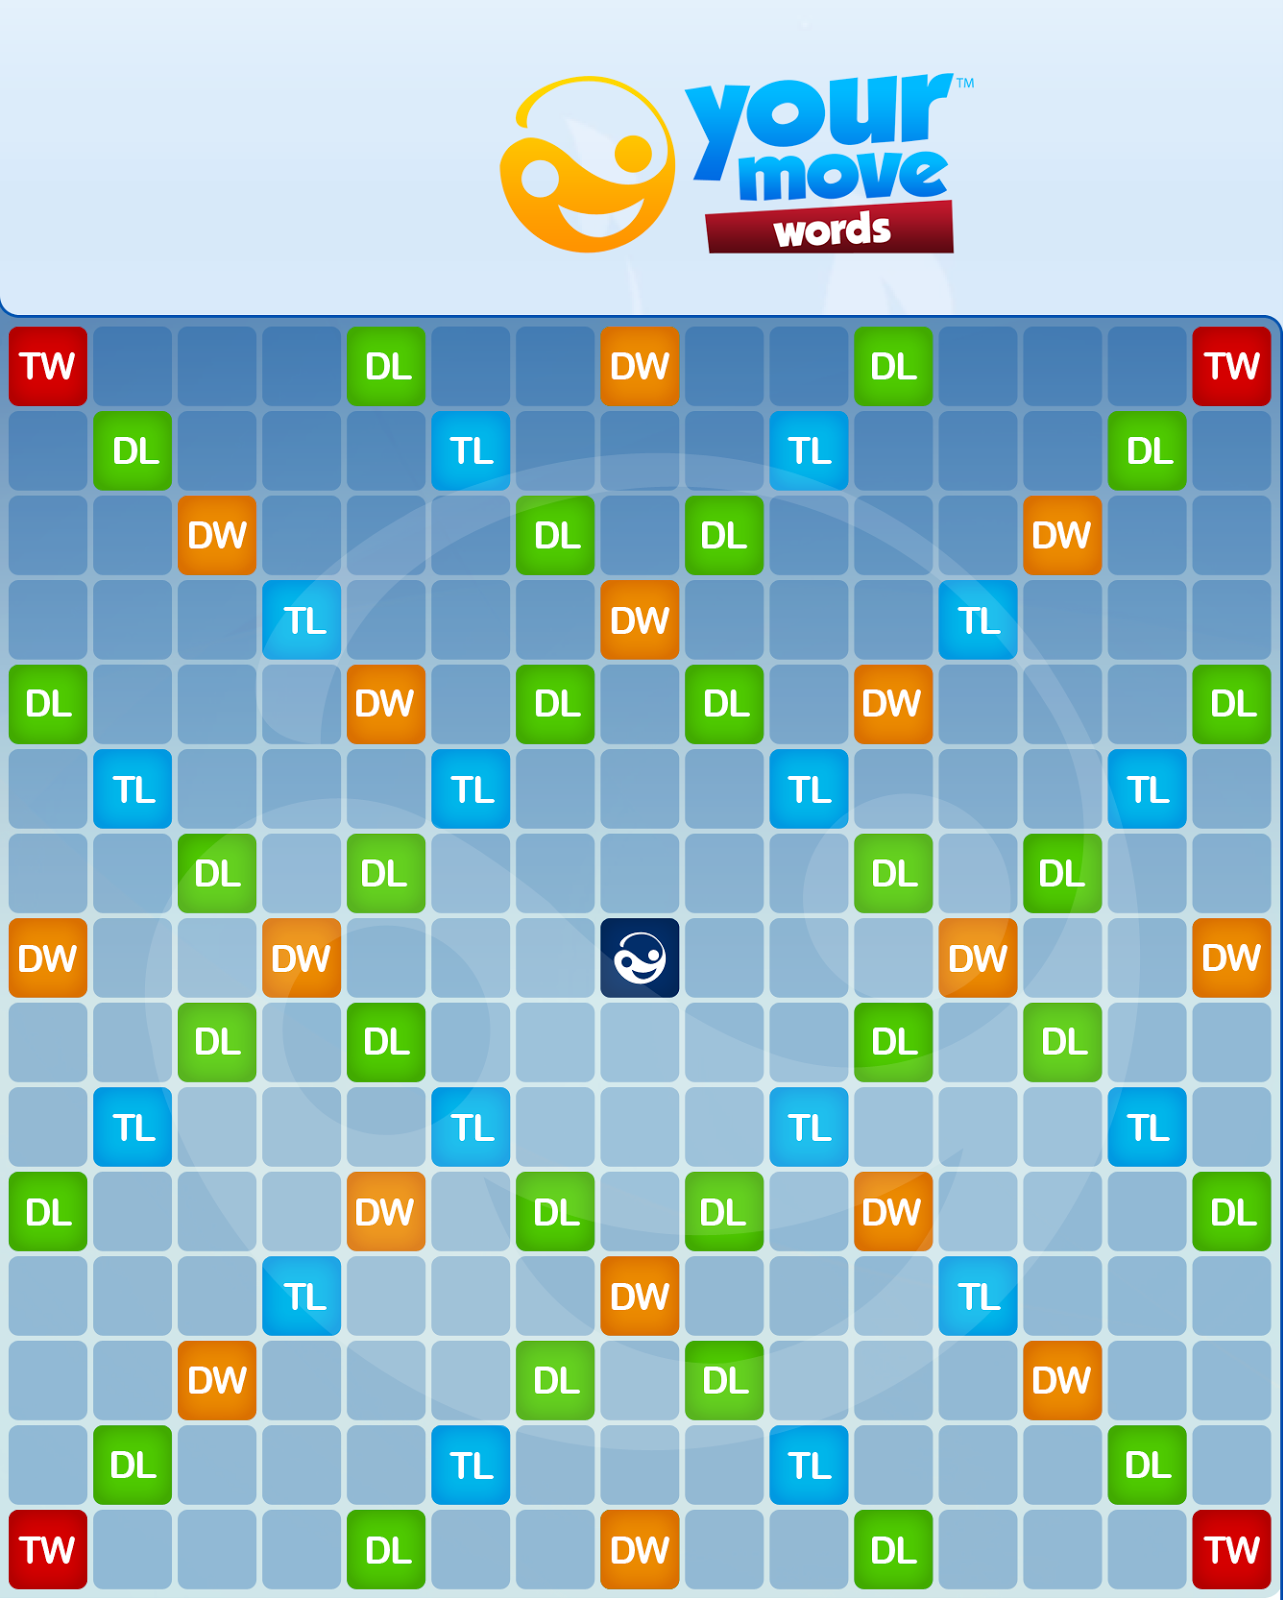 Your move words screenshot from an ipad